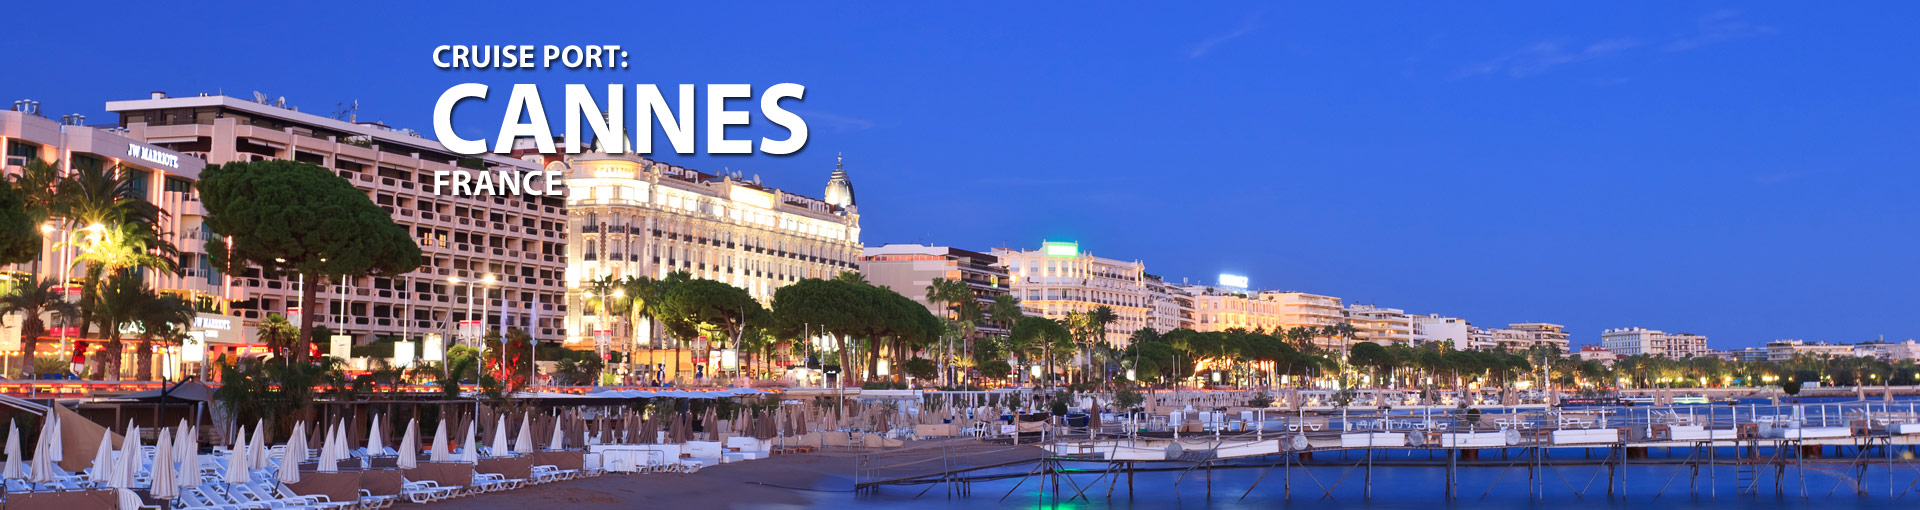 Cruises to Cannes, France